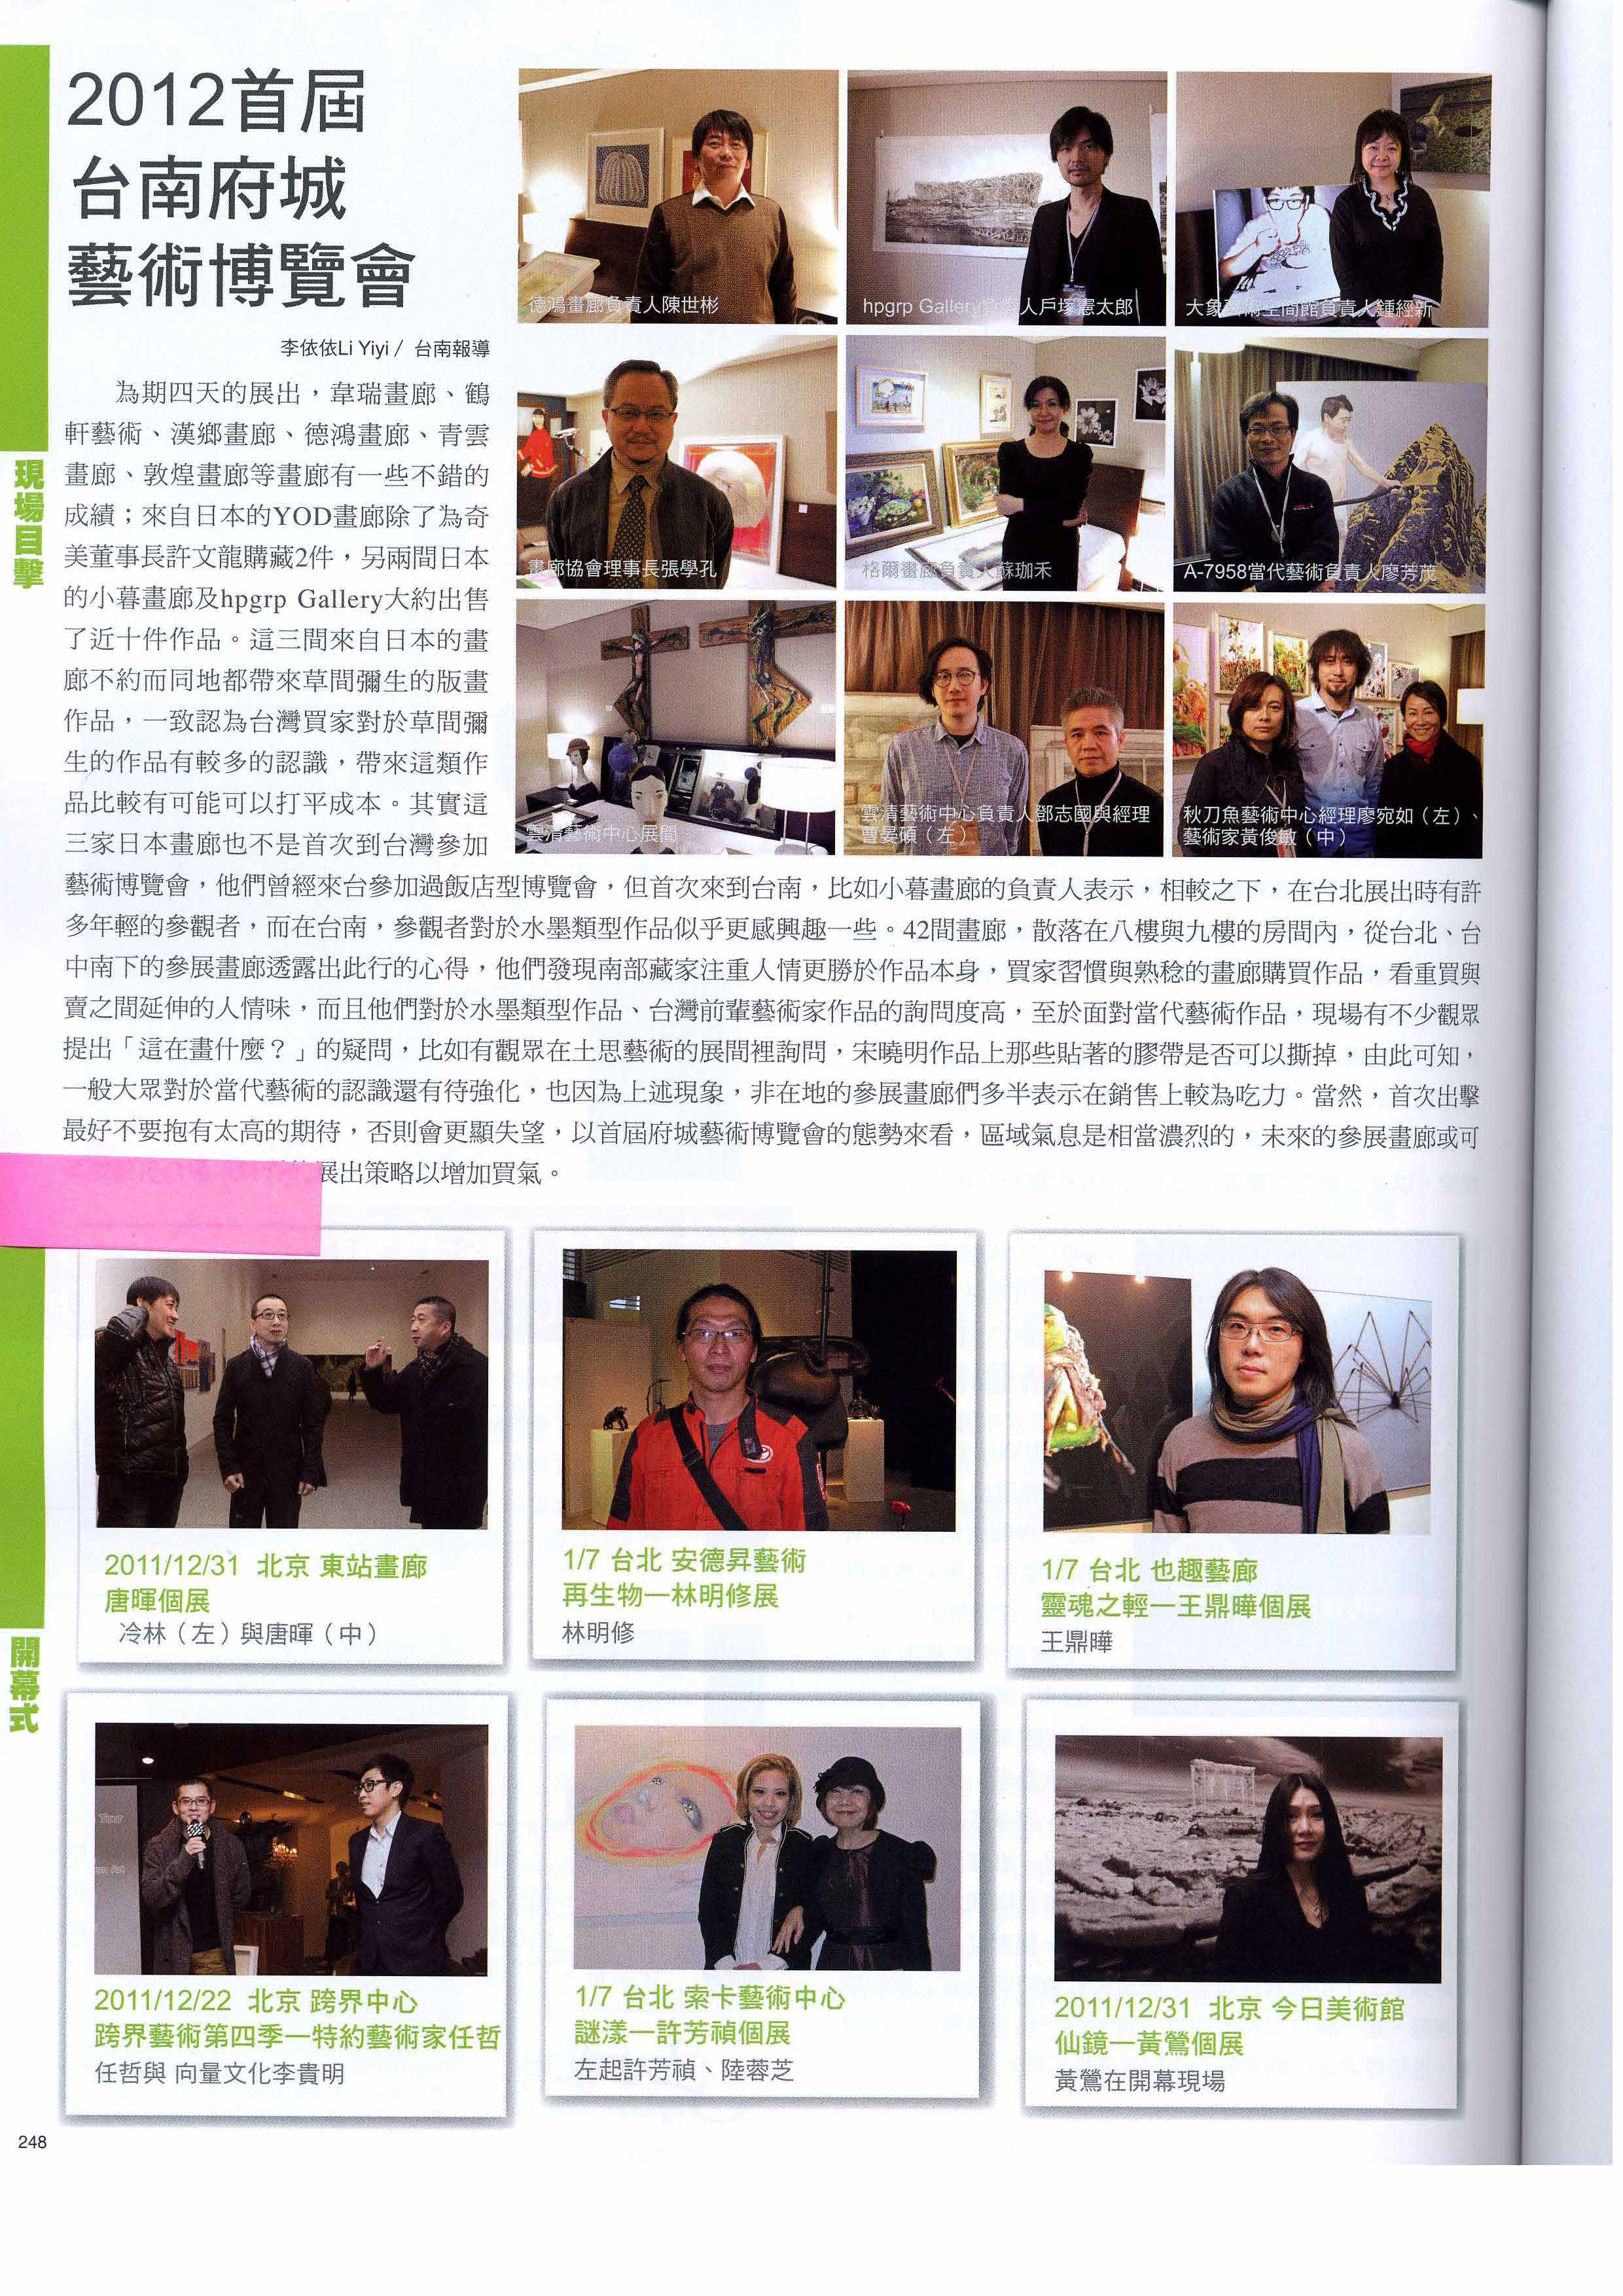 Cans藝術新聞_許芳禎_Page_1.jpg